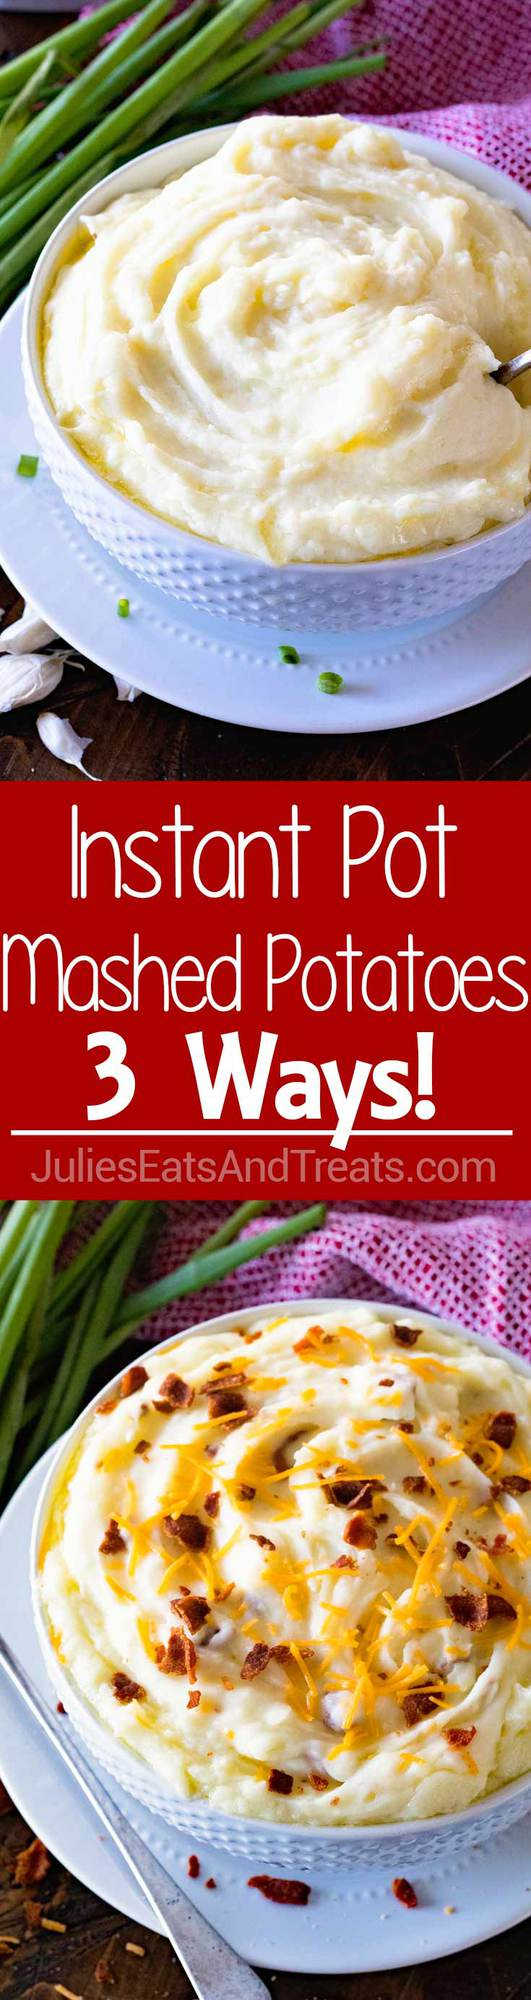 {Instant Pot} Pressure Cooker Mashed Potatoes ~ Three Different Ways! We Have Traditional Mashed Potatoes, Cheddar Bacon and Garlic Mashed All Made In Your Pressure Cooker!